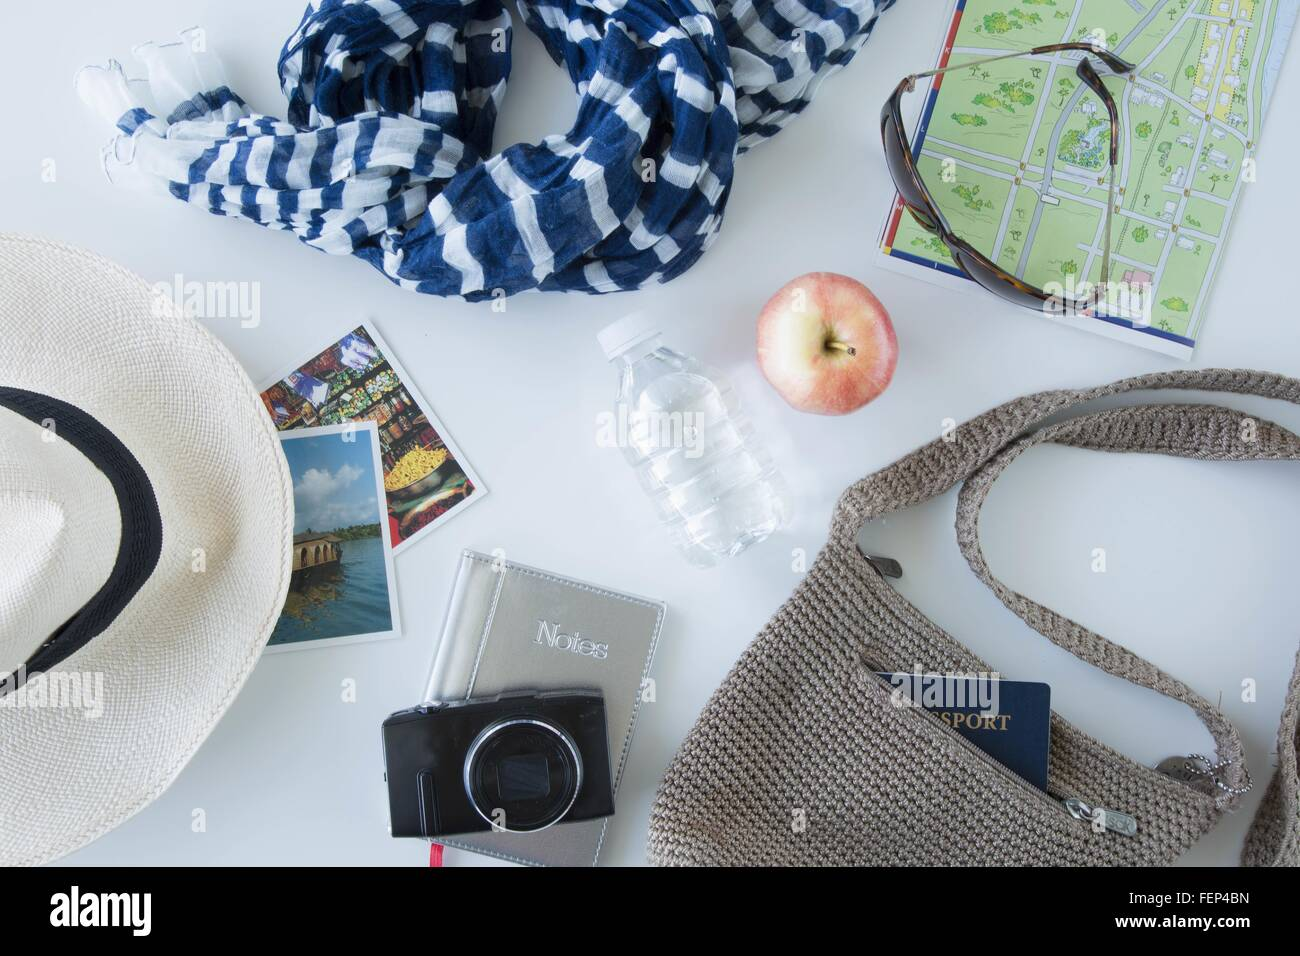 Overhead view of items being prepared for sightseeing on city break - Stock Image